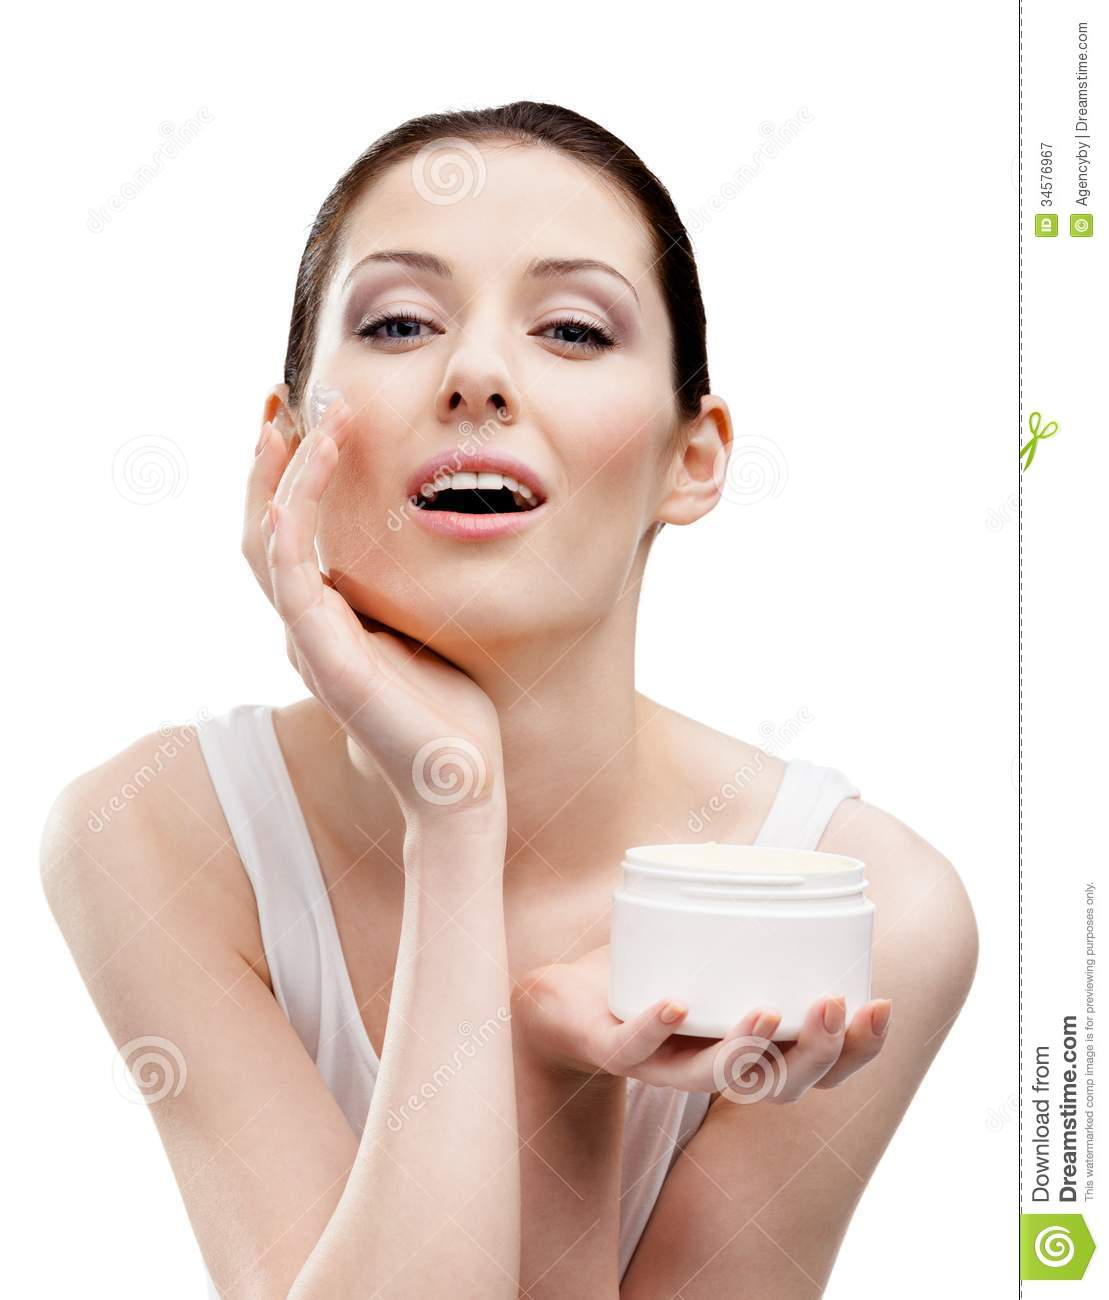 Effective Skin Whitening Creams and Fairness Creams in India with reviews I have compiled a list of top skin lightening and fairness creams that are available in the Indian market easily. Some of them are fairness creams for oily skin, dry skin while some can be for all skin types.